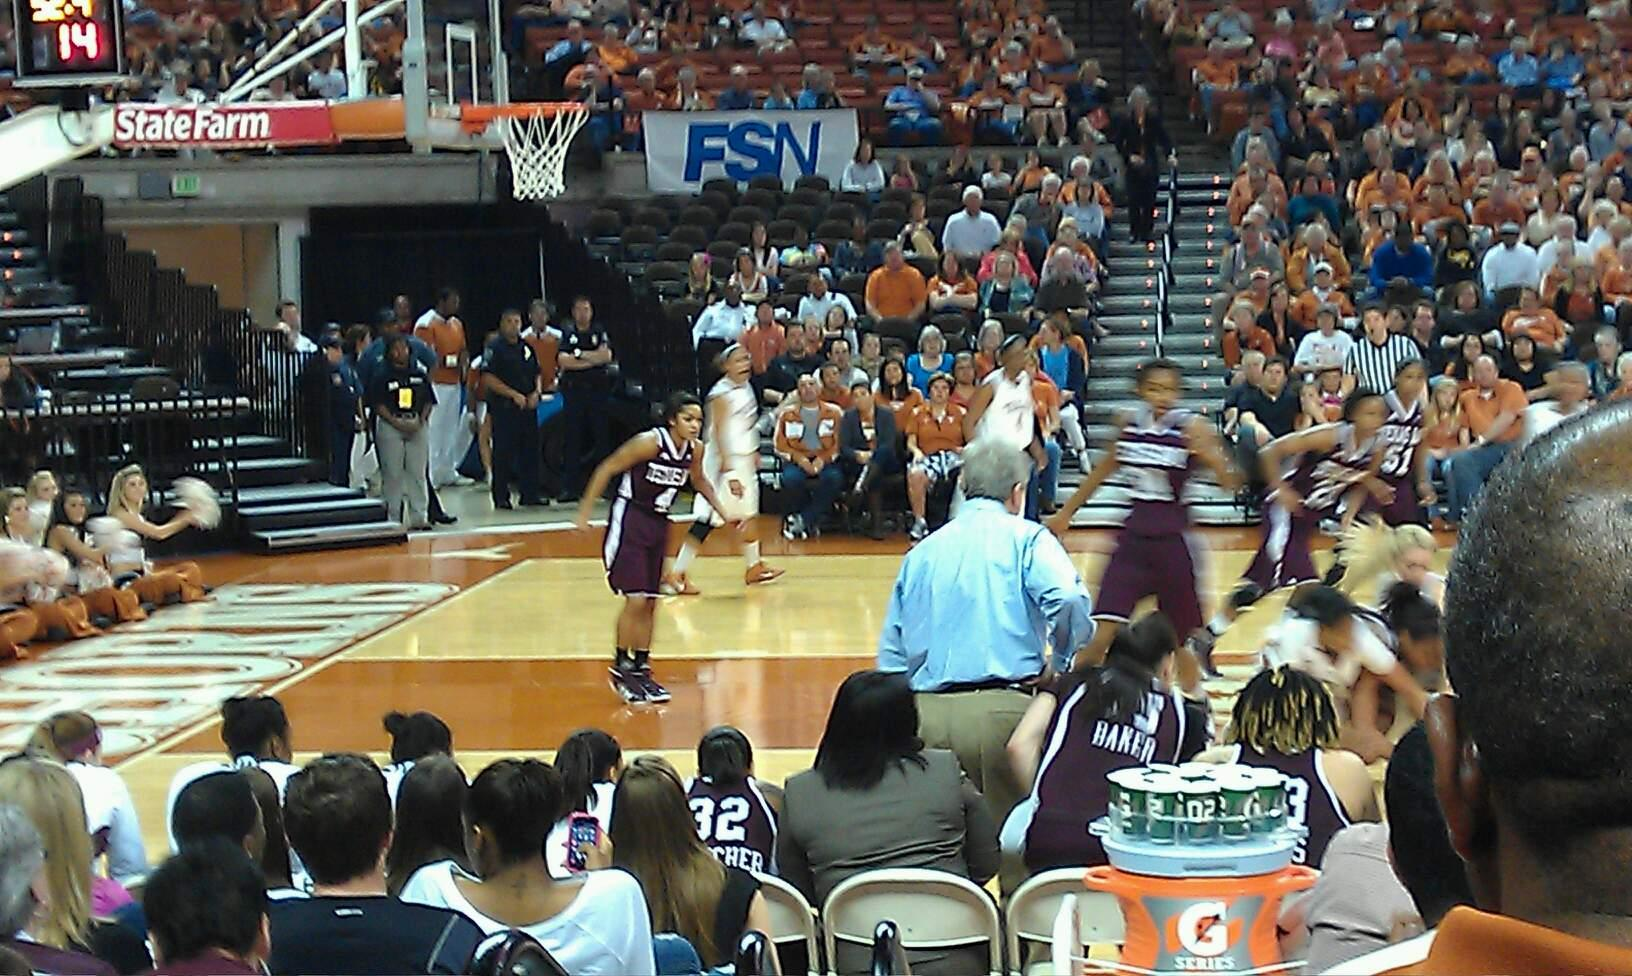 Frank Erwin Center Section 49 Row 9 Seat 10